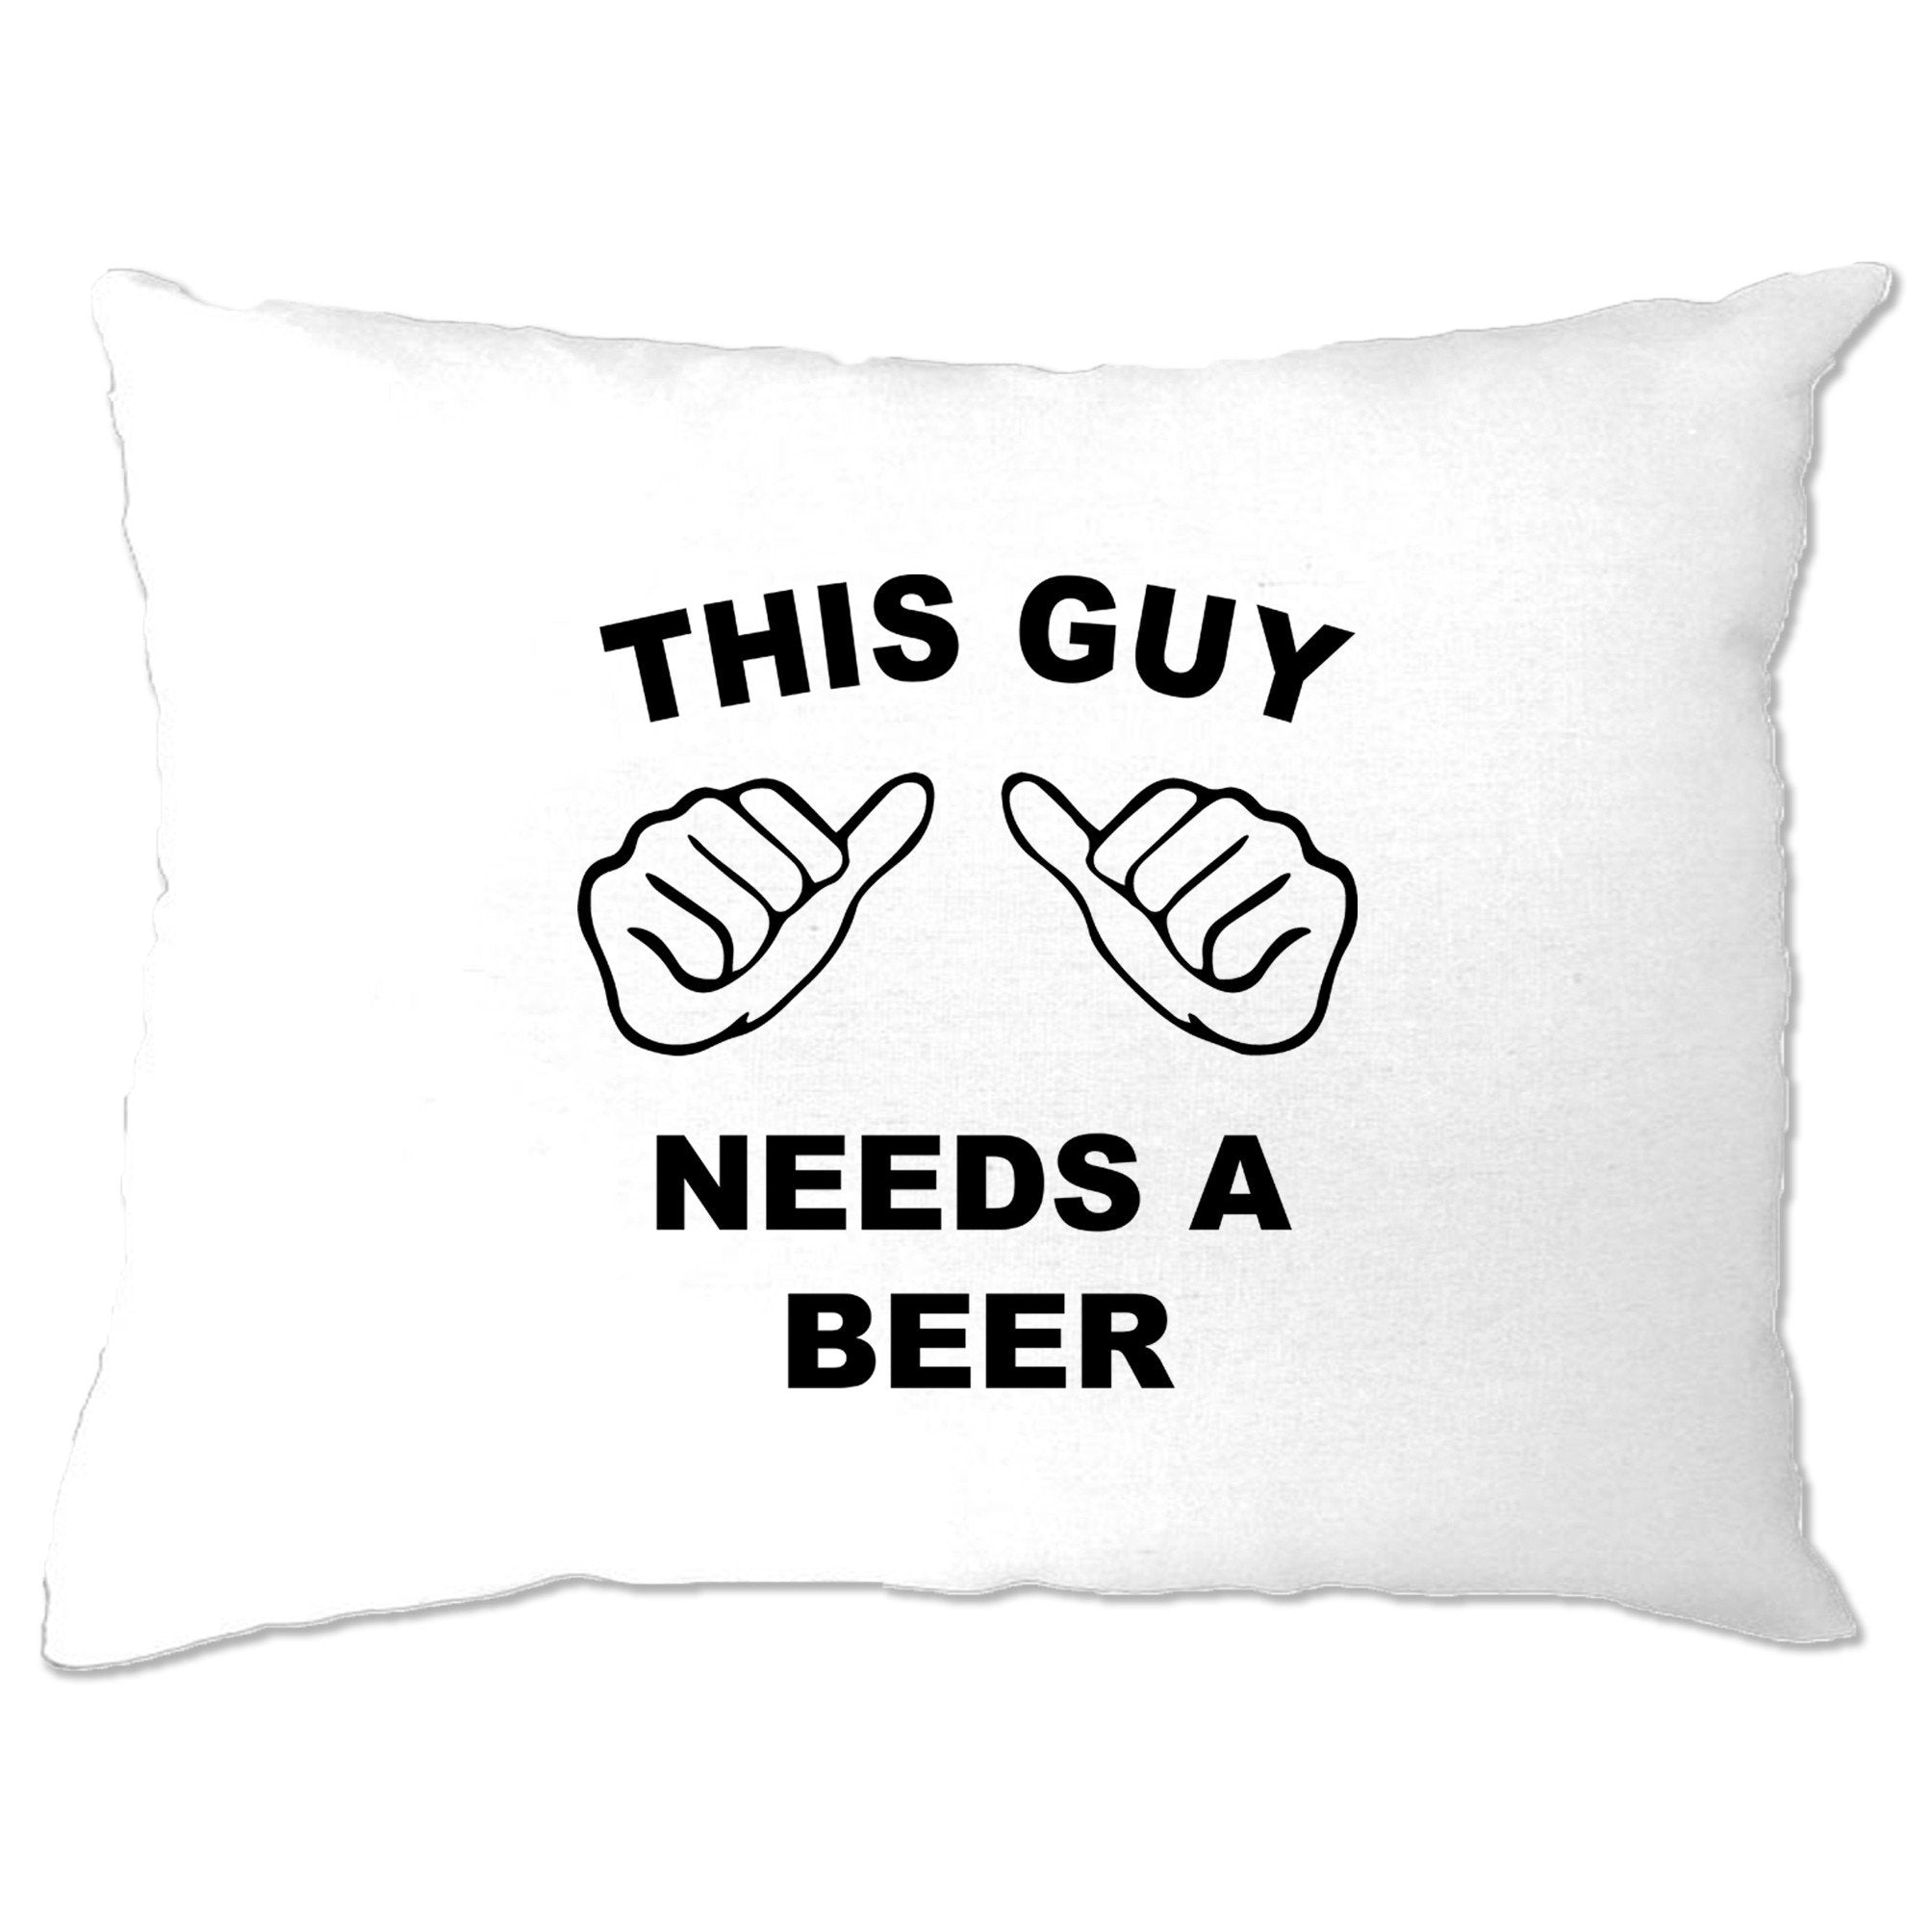 Novelty Pillow Case This Guy Needs A Beer Slogan